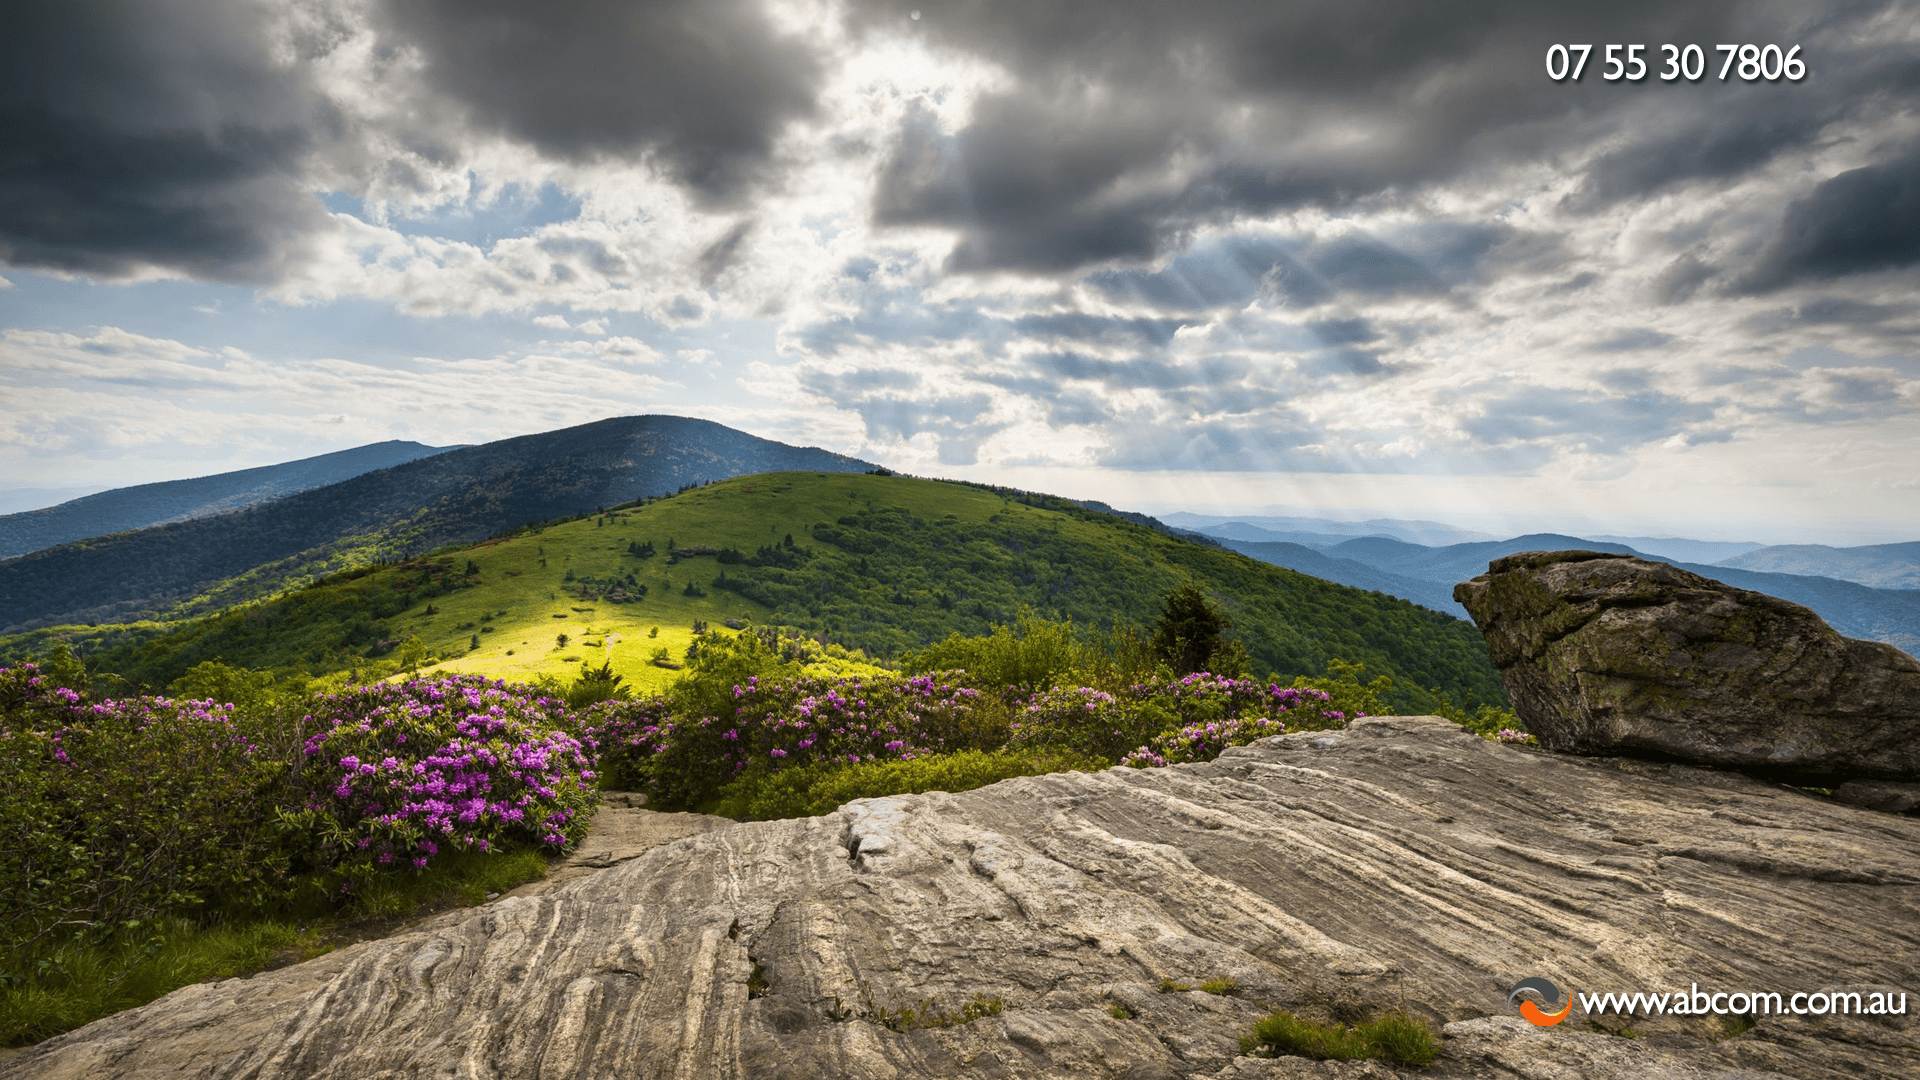 Appalachian Trail Desktop Wallpaper - WallpaperSafari